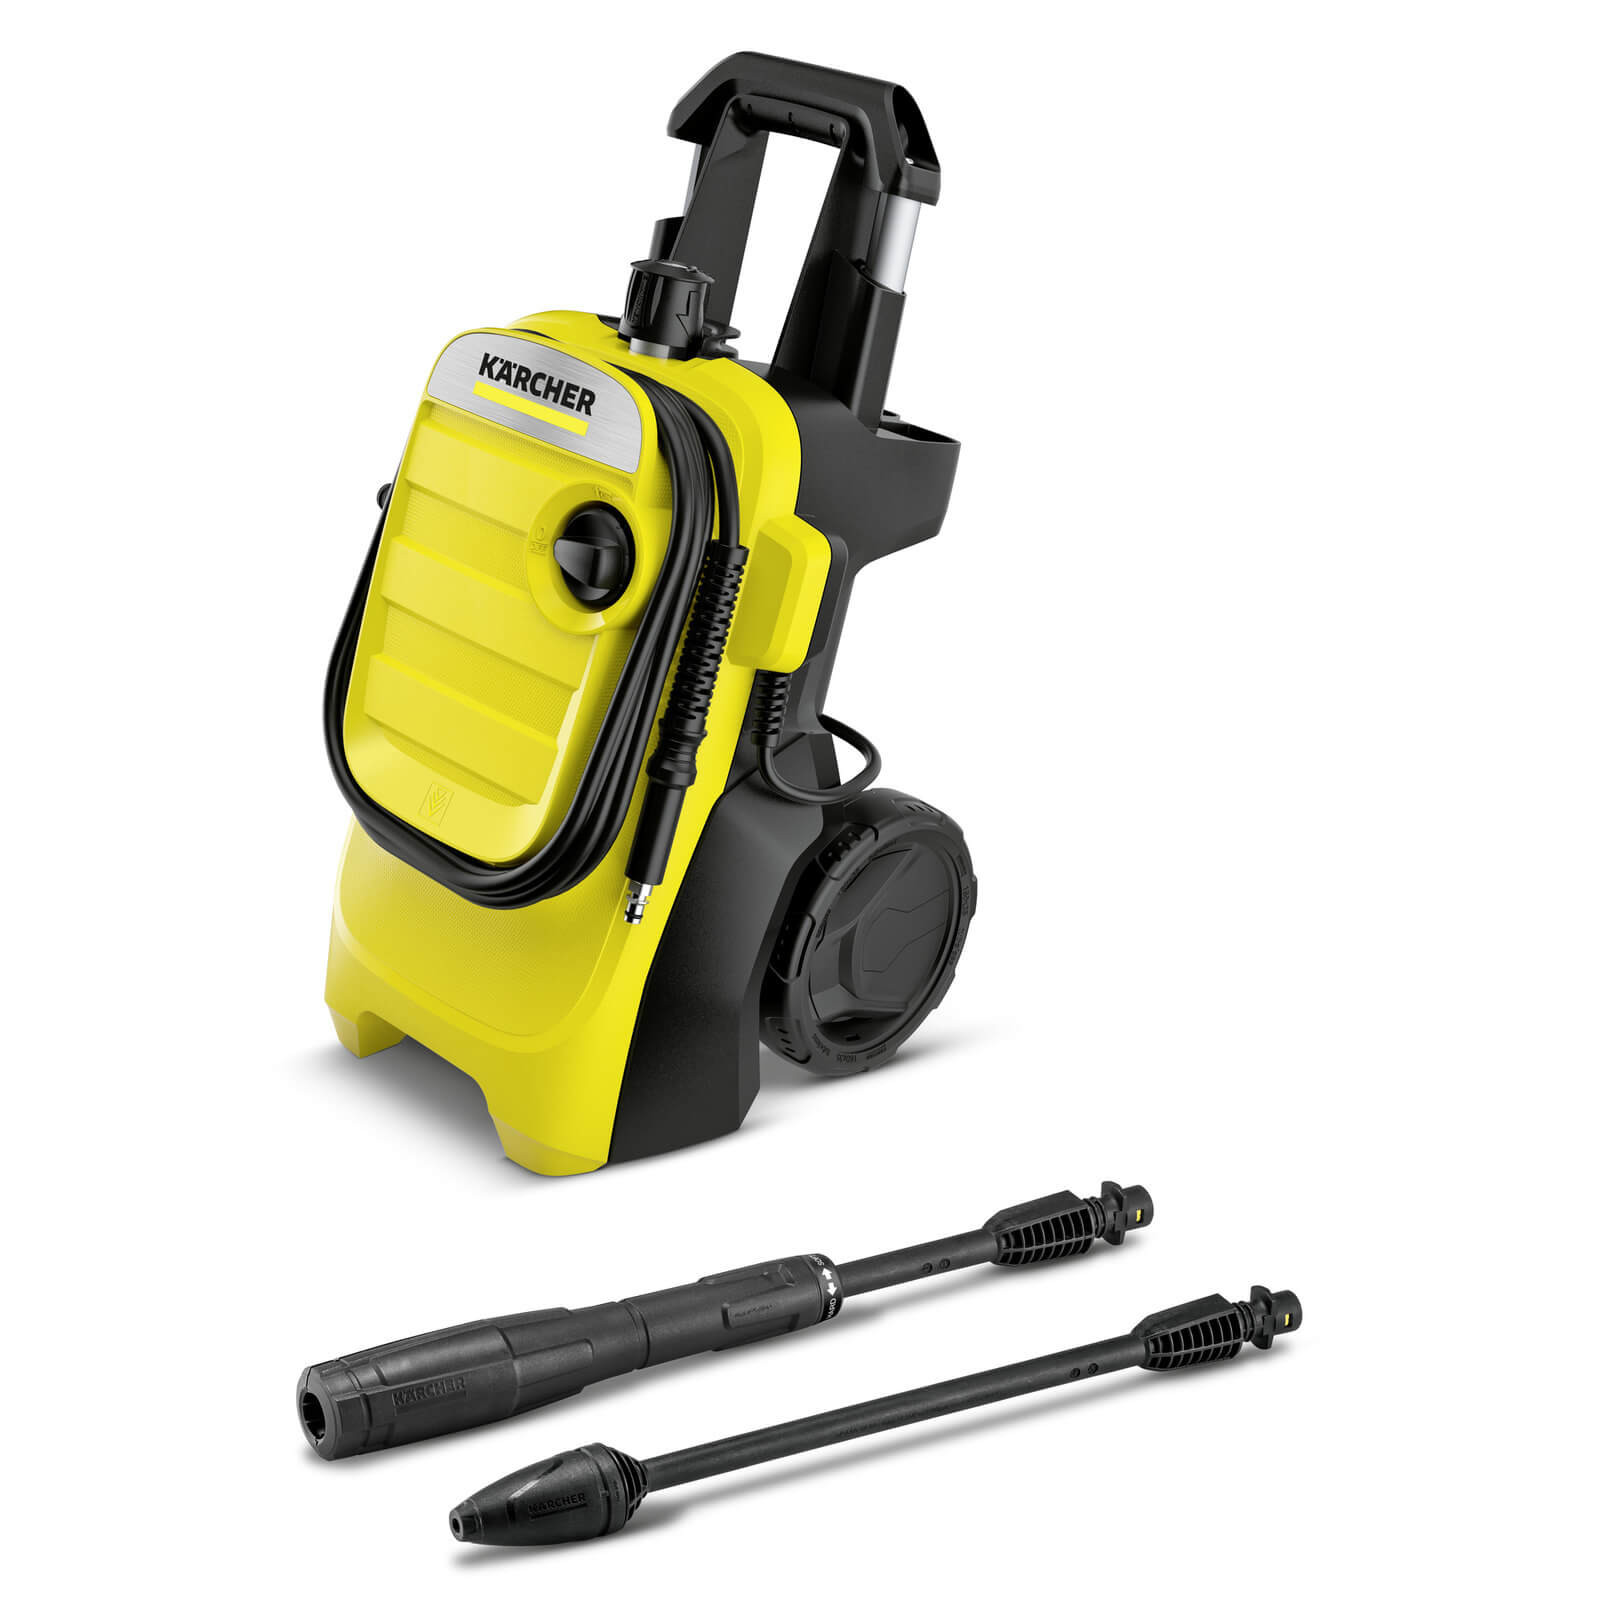 KARCHER 1800Watt High Pressure Washer- K4 Compact